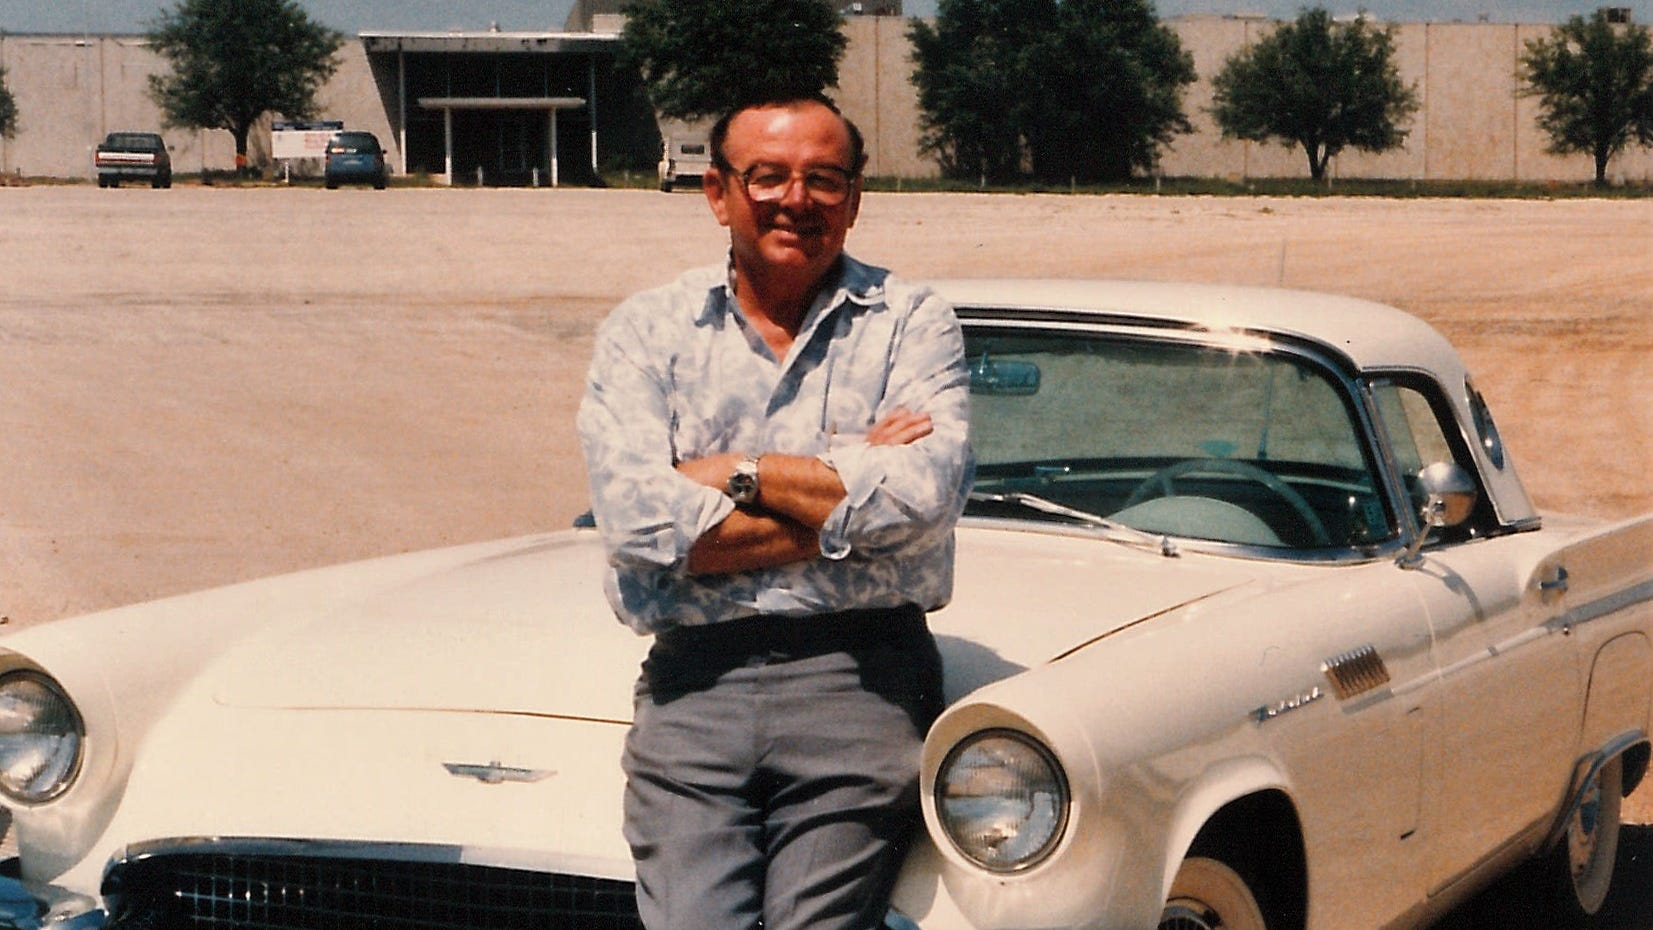 Tommy Wideman poses in 1992 outside what used to be the Aileen clothing plant. The building was empty for years before Coca-Cola and other companies began using it for warehouse space and other purposes. Before tenants were found, Wideman told people he managed the fifth largest empty building in Texas.